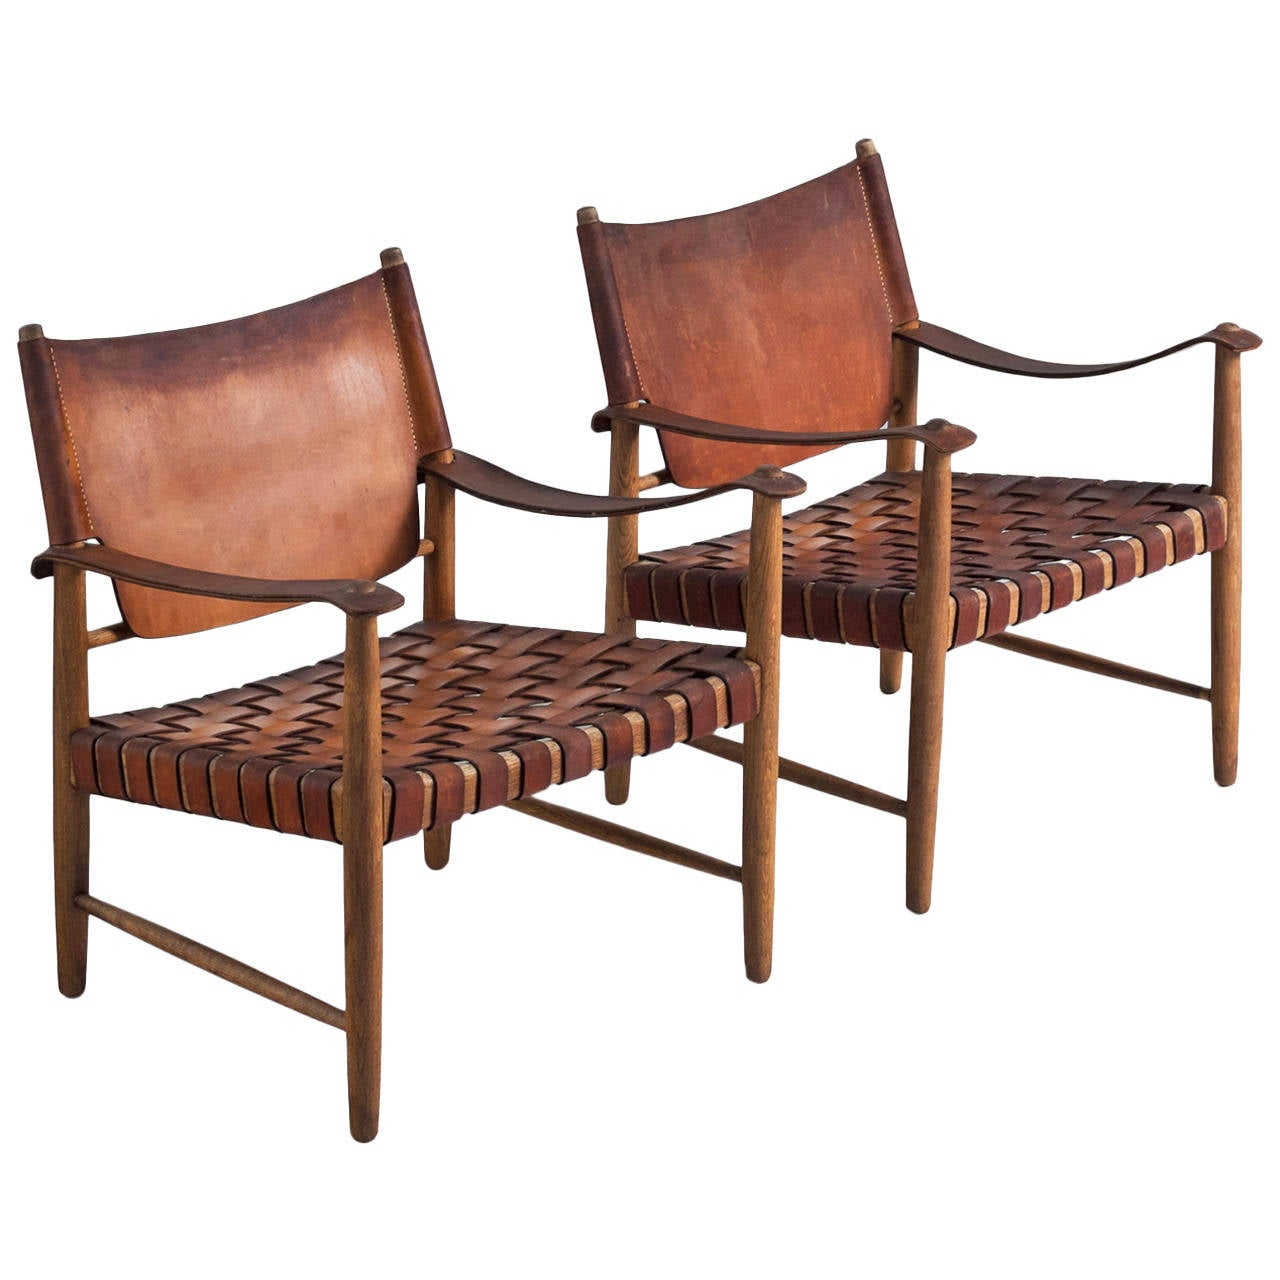 Safari Chairs in Cognac Leather at 1stdibs